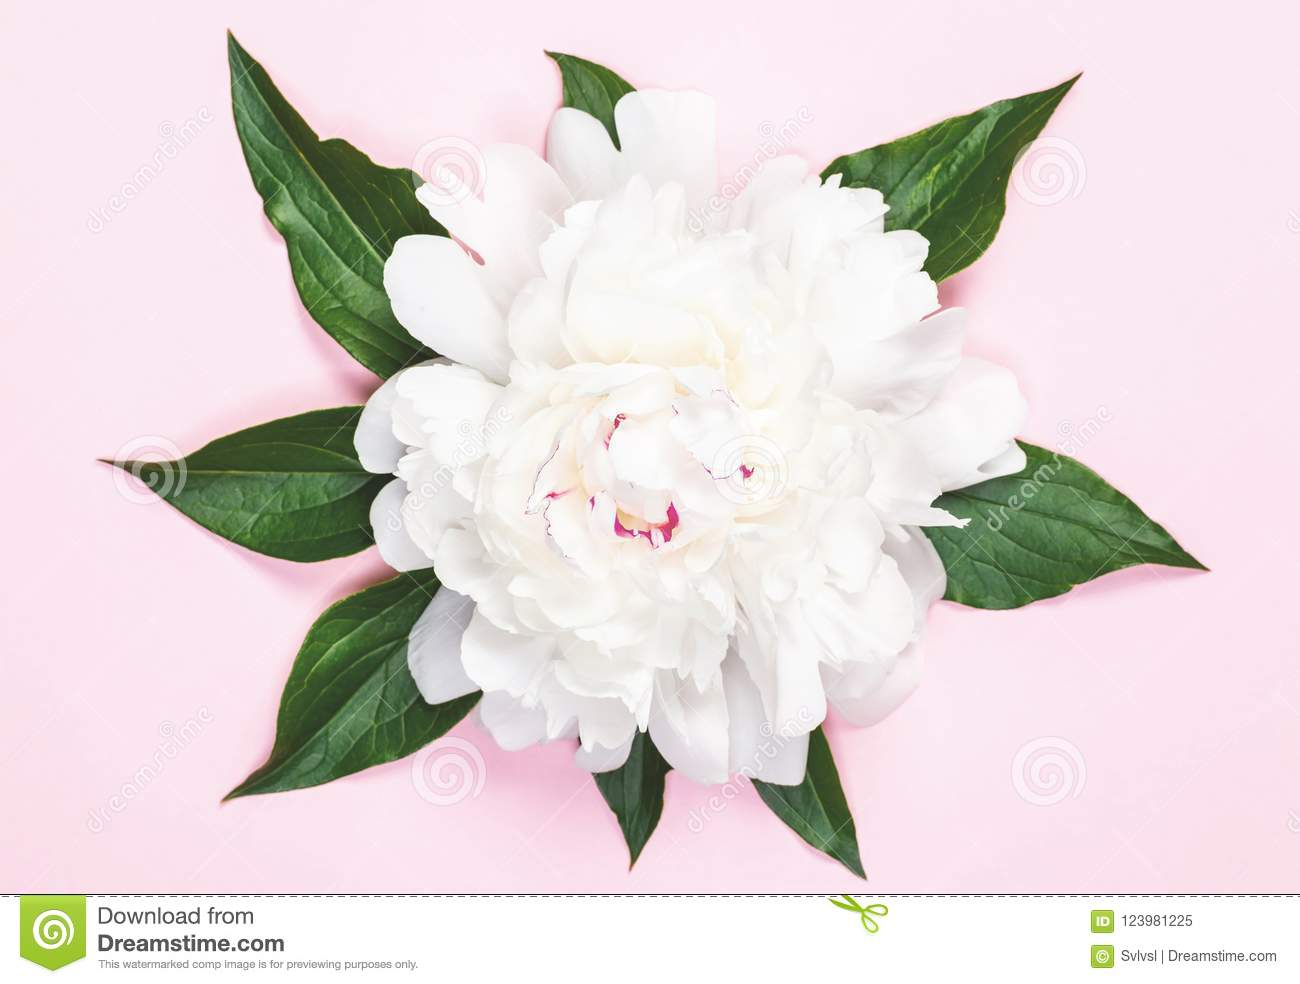 White Peony Flower And Leaves On Pastel Pink Background Flat Lay